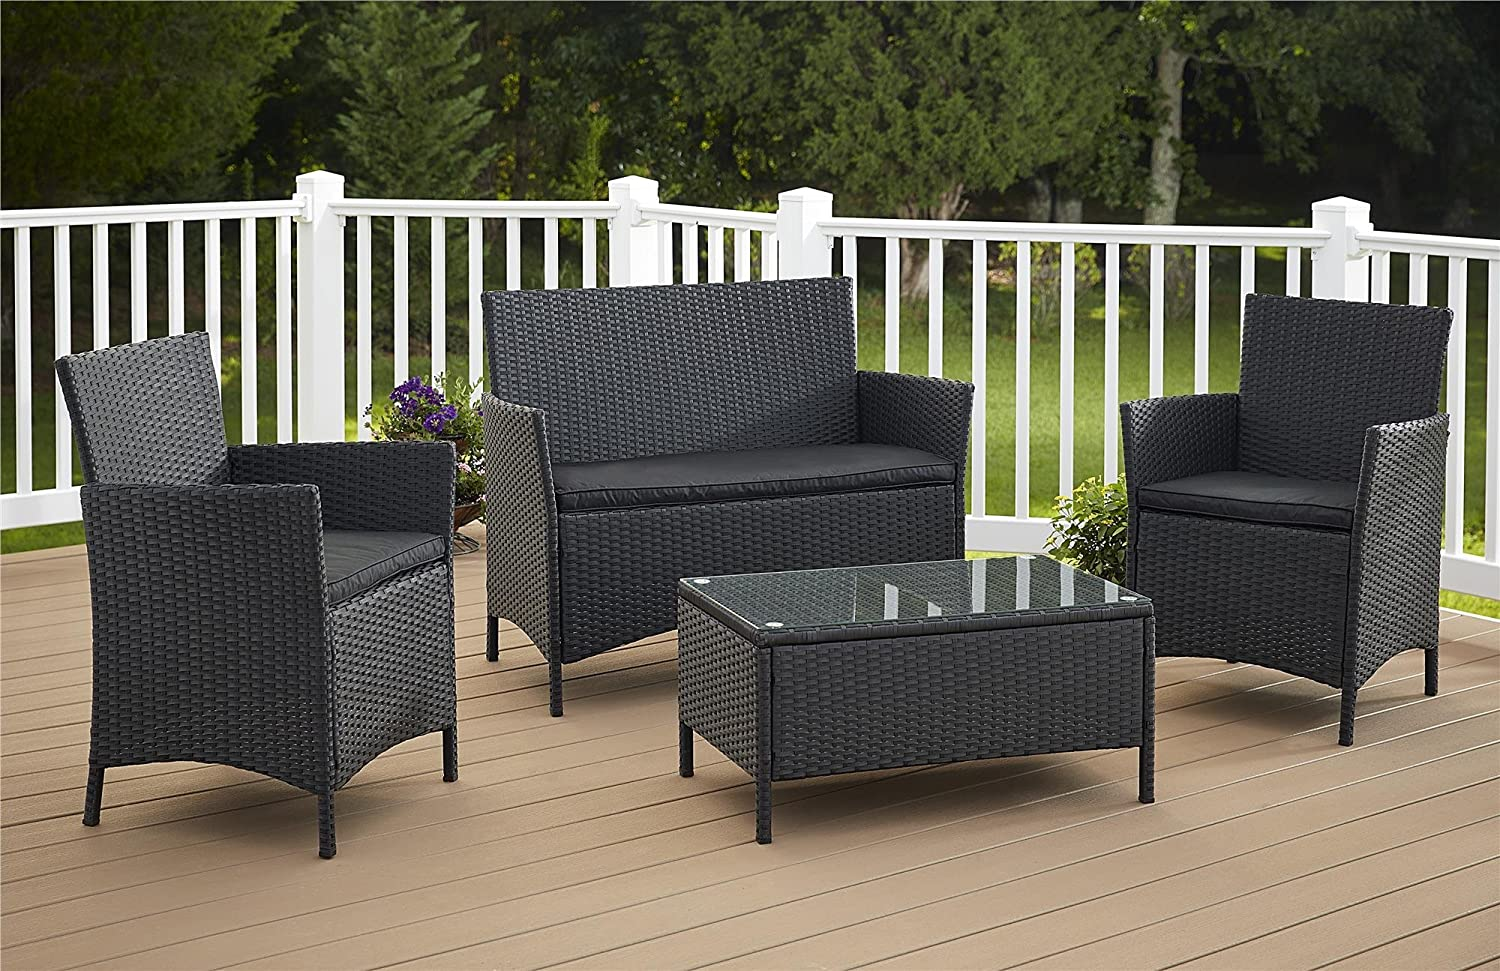 amazoncom cosco products 4 piece jamaica resin wicker conversation set garden outdoor